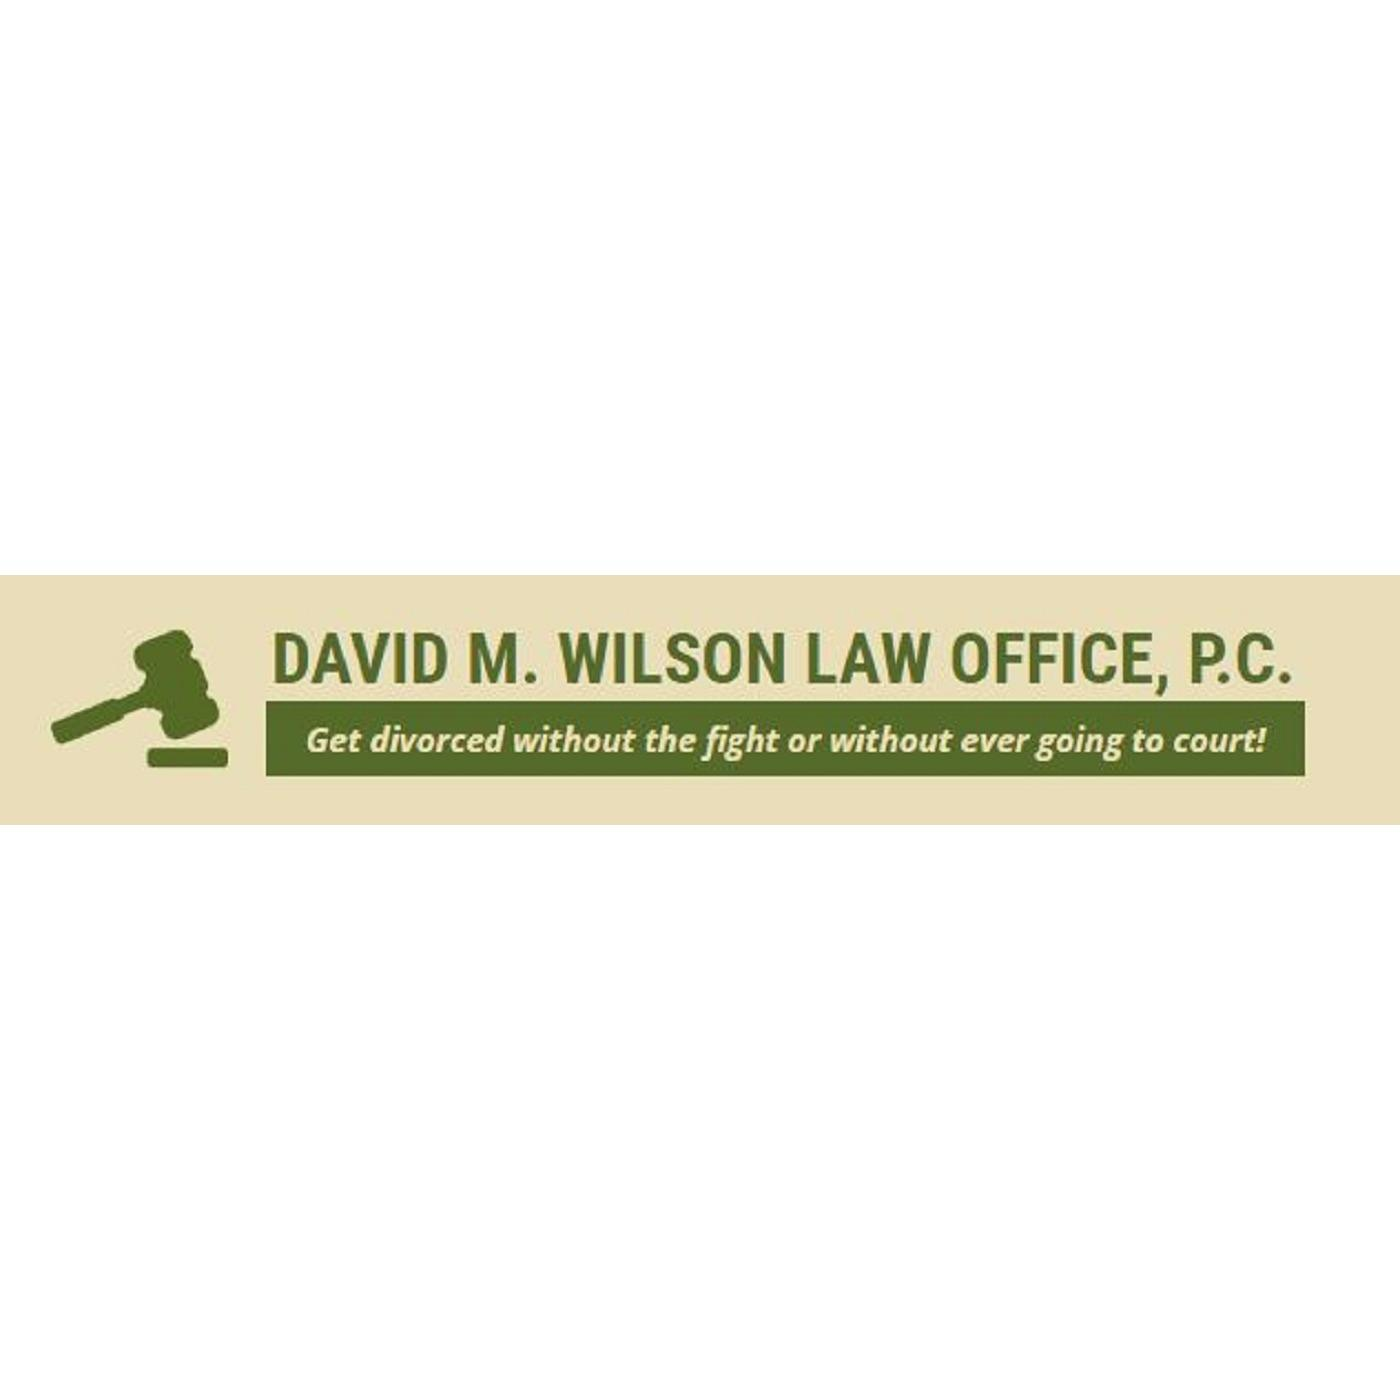 David M. Wilson Law Office, P.C.